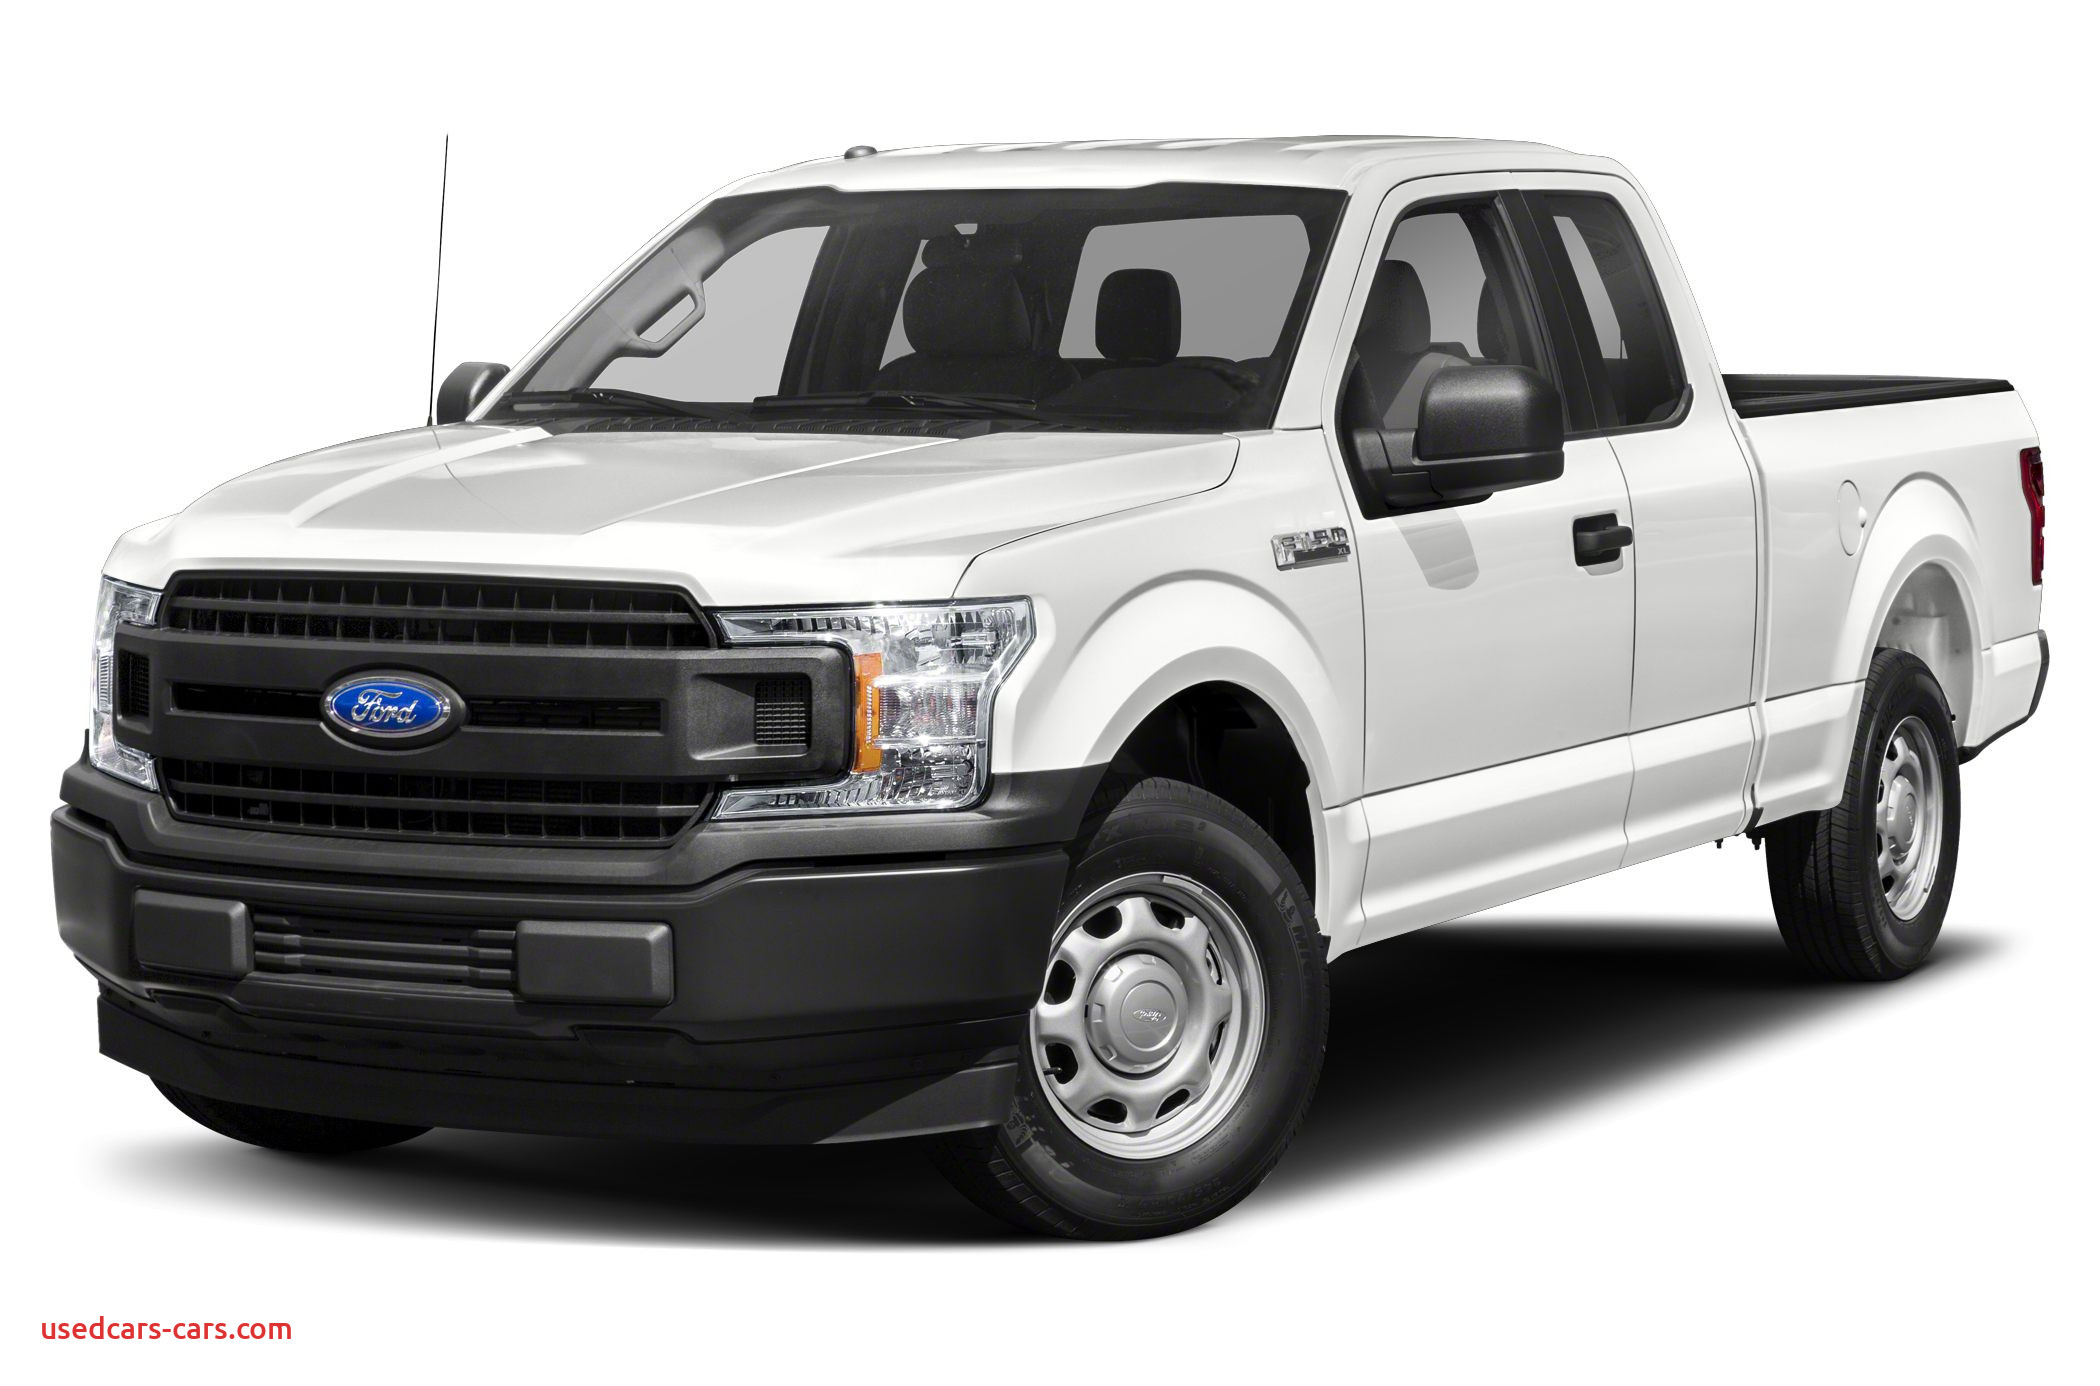 Ford 2020 Diesel F150 Best Of 2020 ford F 150 Xl 4x4 Supercab Styleside 8 Ft Box 163 In Wb Pricing and Options